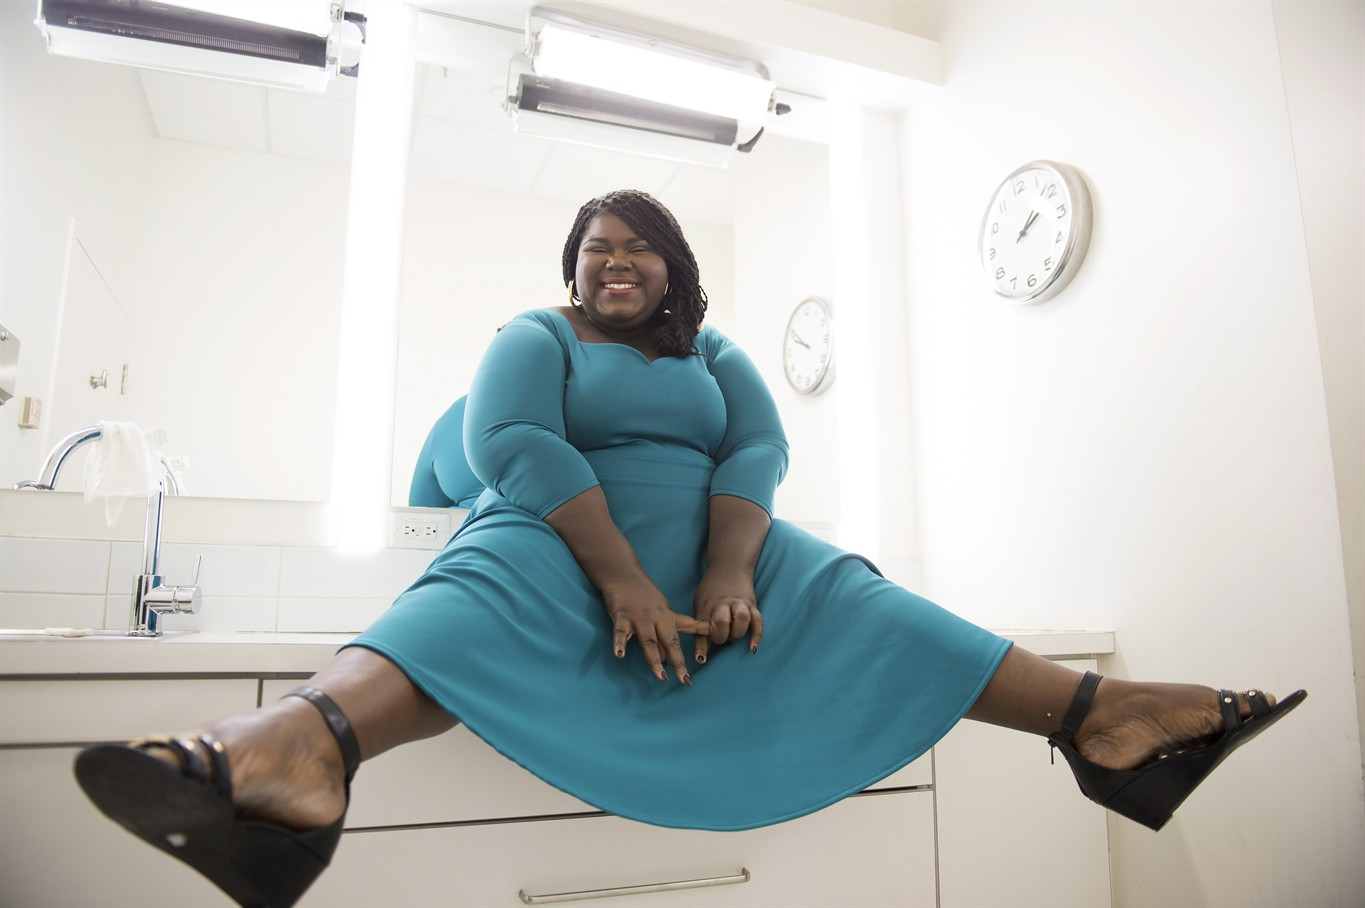 Gabourey Sidibe Discusses Weight Loss Journey In Memoir This Is